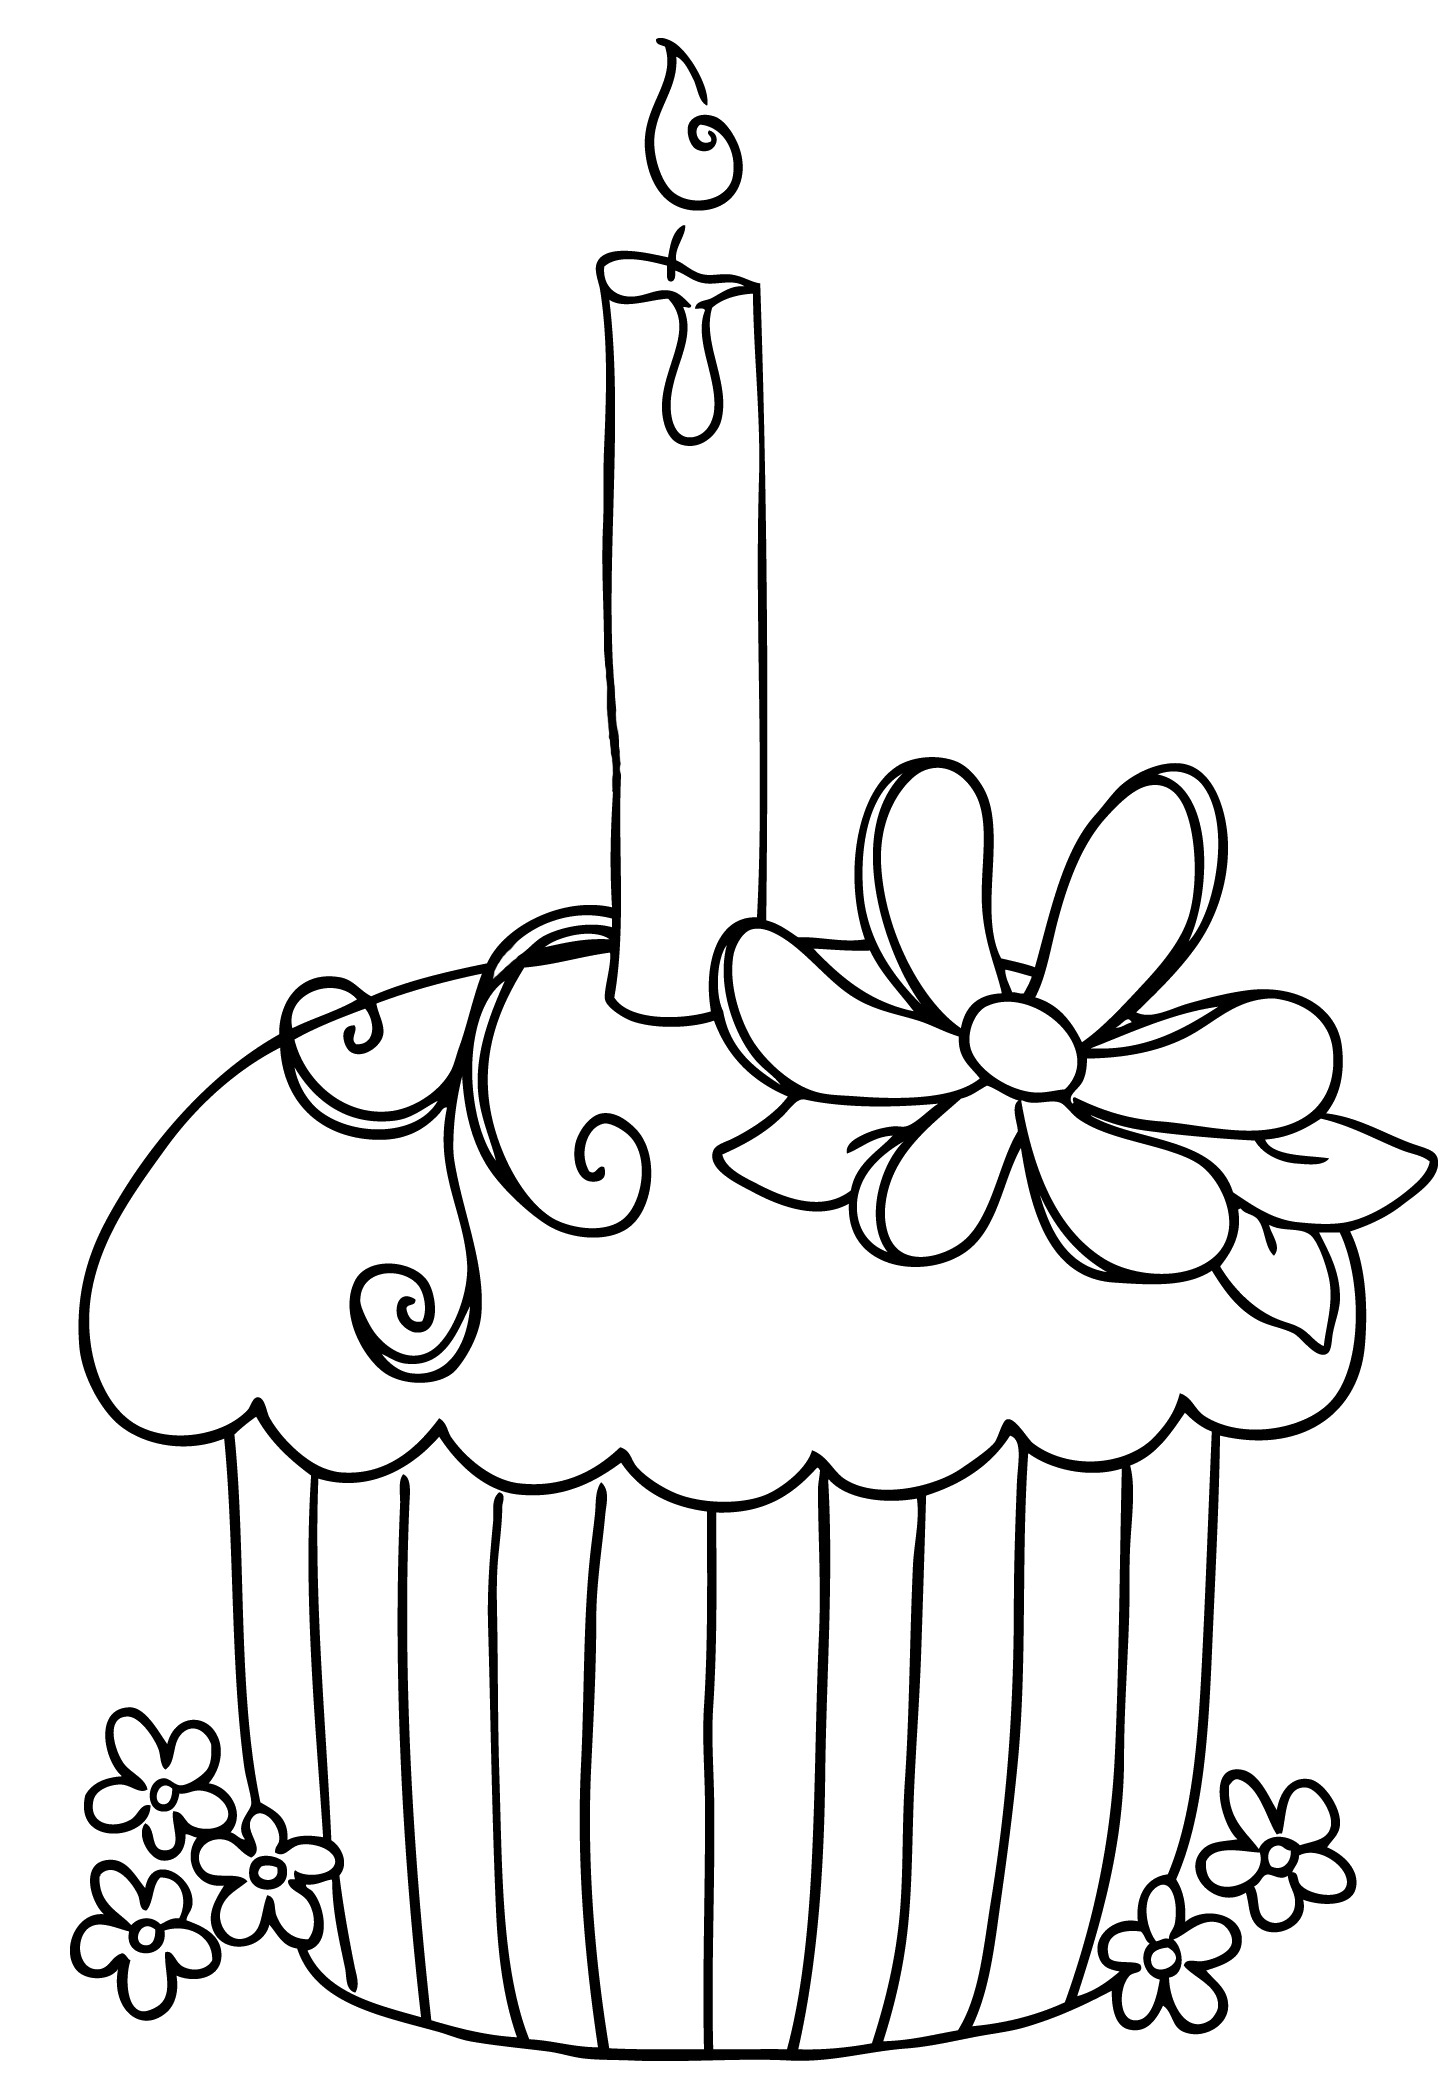 cute cupcake coloring sheets - Heart.impulsar.co